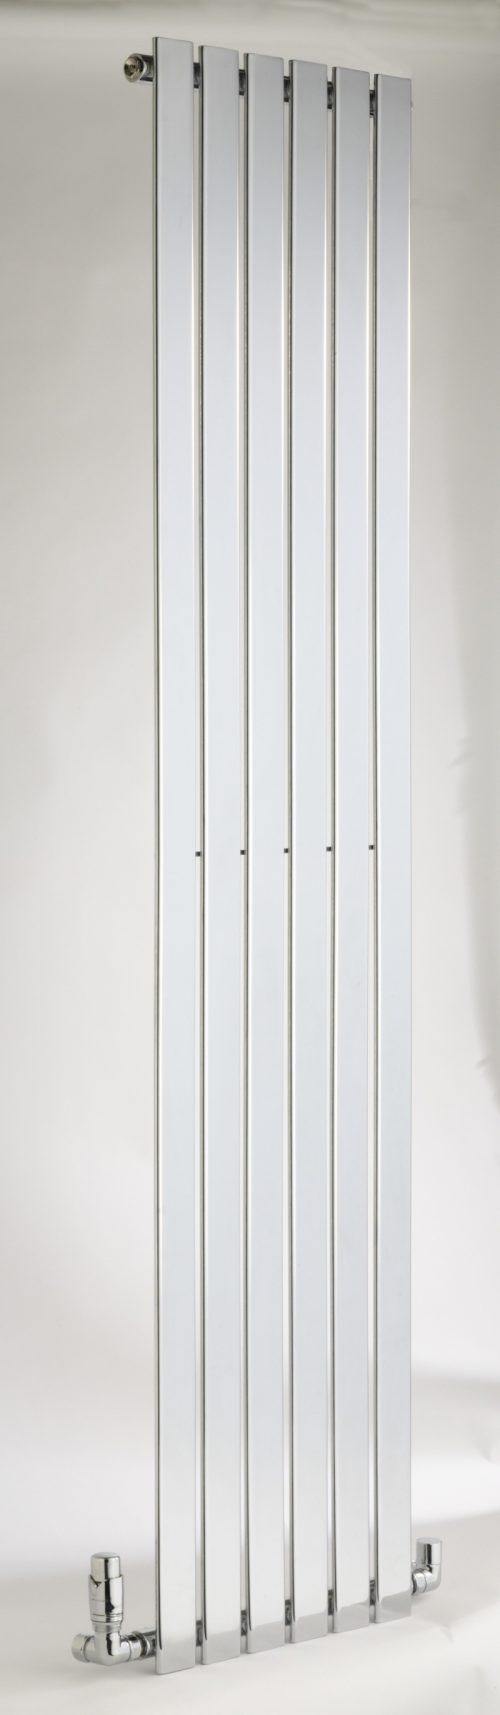 DQ Axis Vertical Radiator-1610